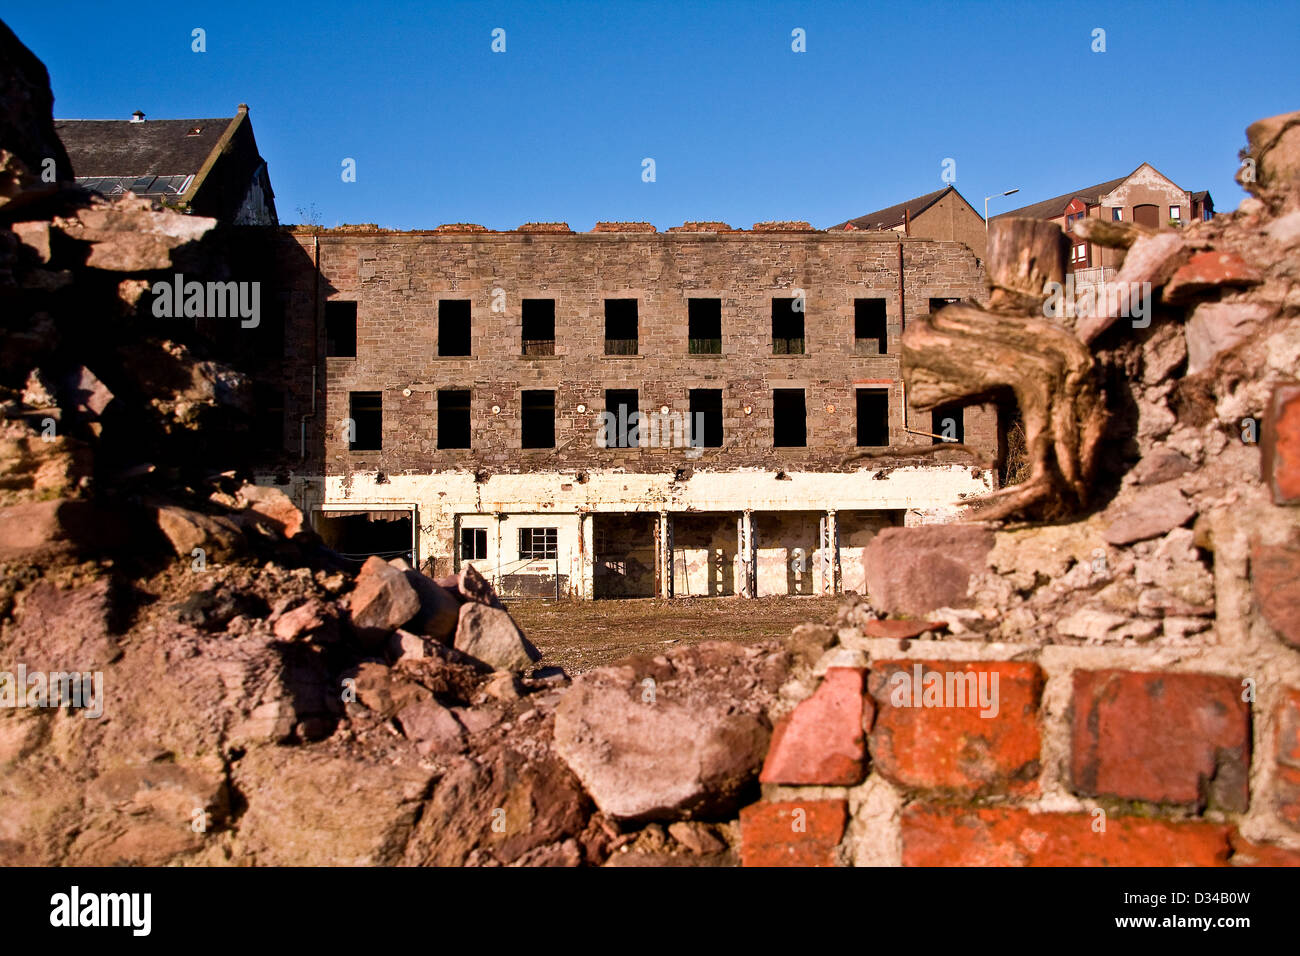 The derelict William Halley & Sons Ltd Jute Mill was built in 1836 and is now a Listed Building in Dundee,UK - Stock Image